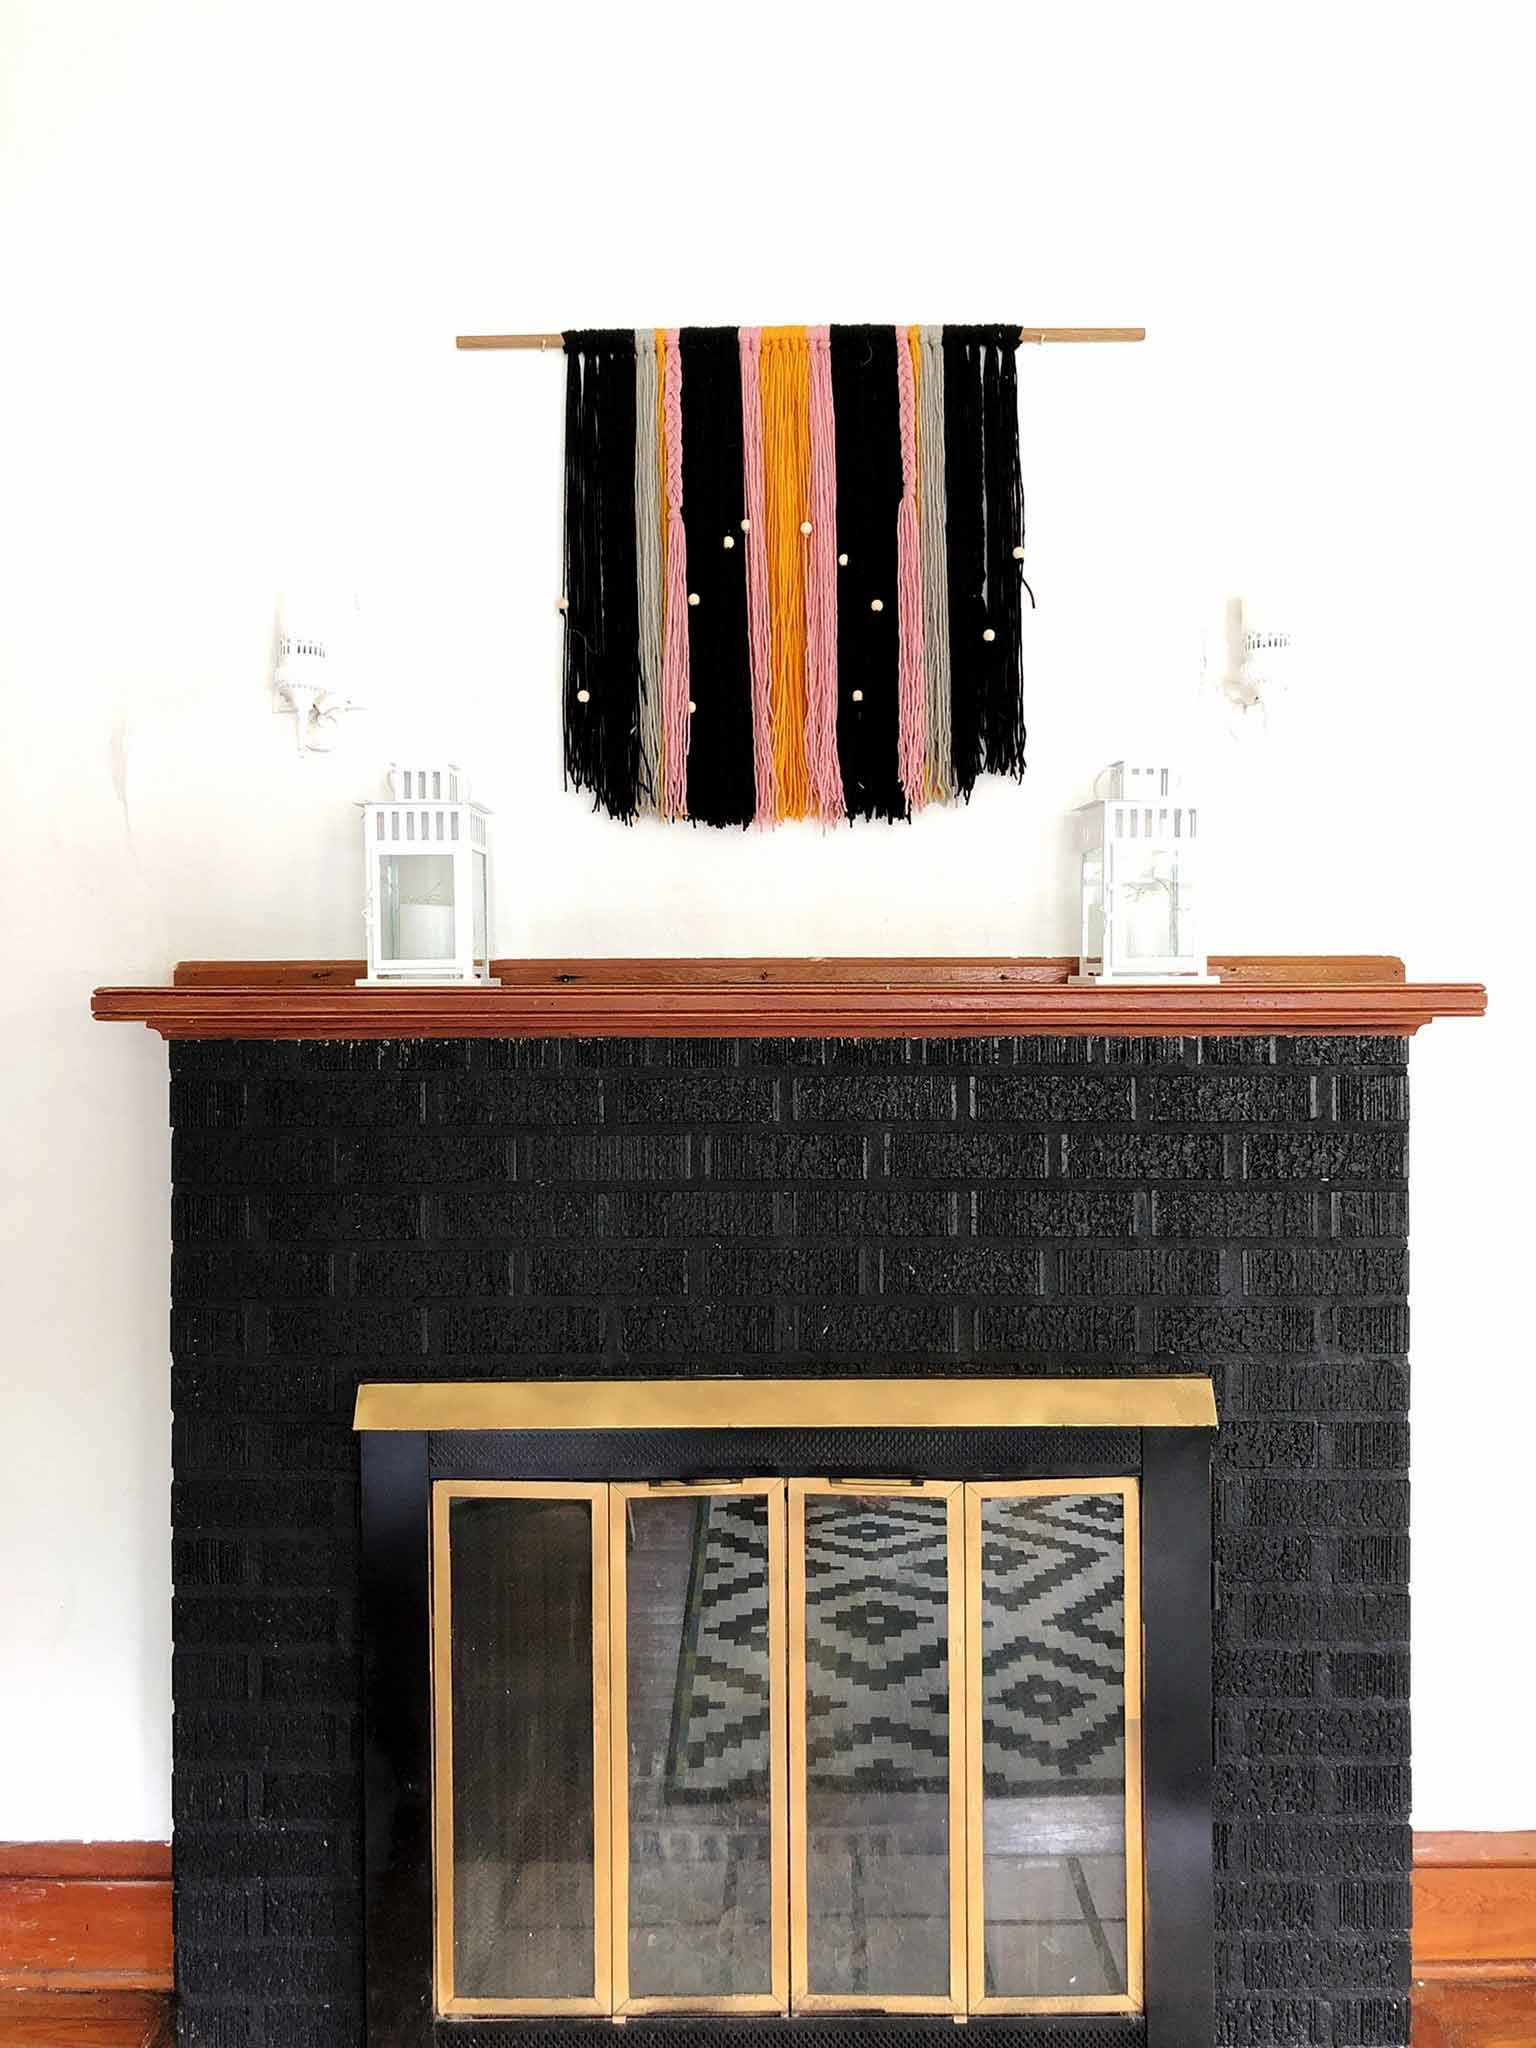 Yarn Wall hanging - Modern minimalist room makeover on a budget - That Homebird Life Blog